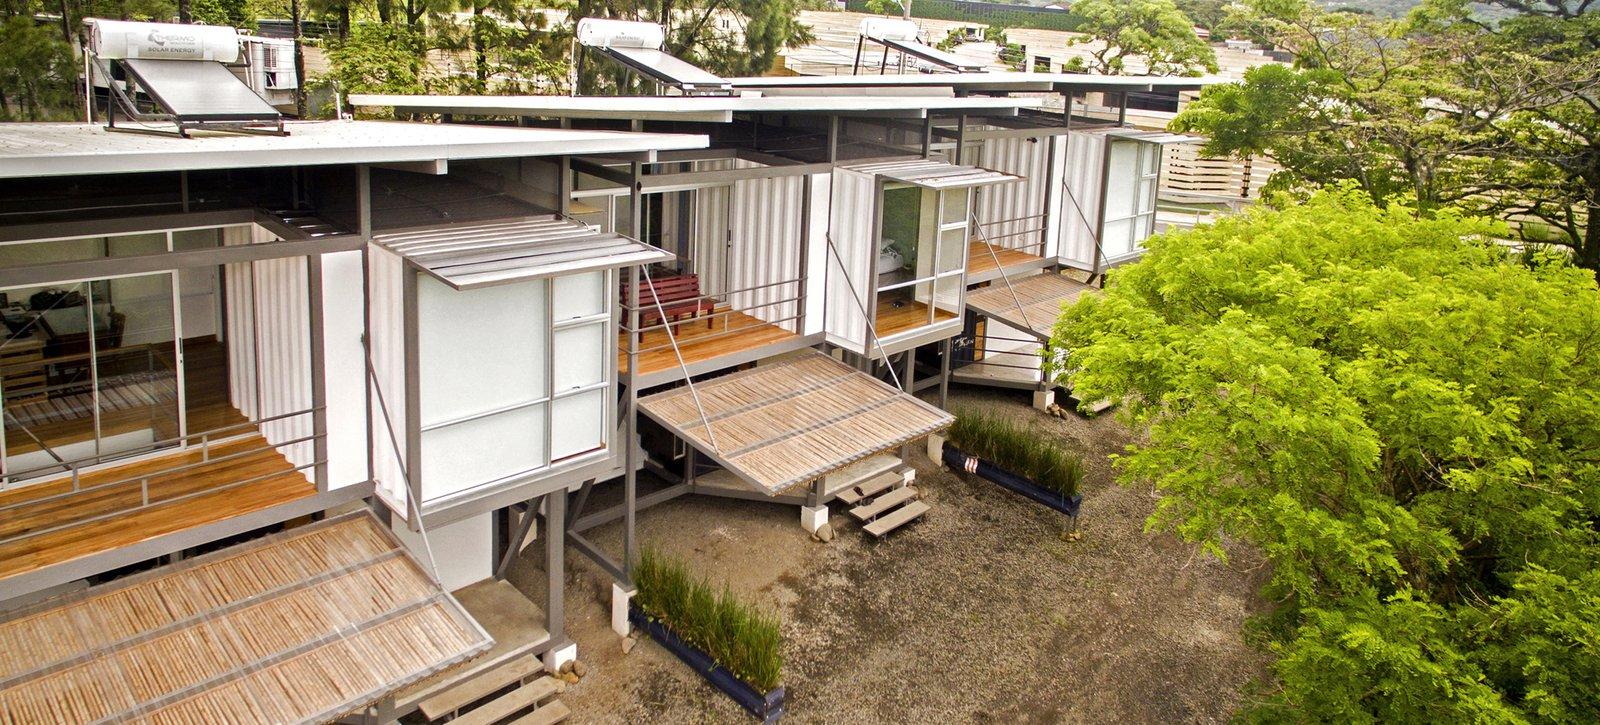 Articles about budget friendly shipping container home costa rica on Dwell.com